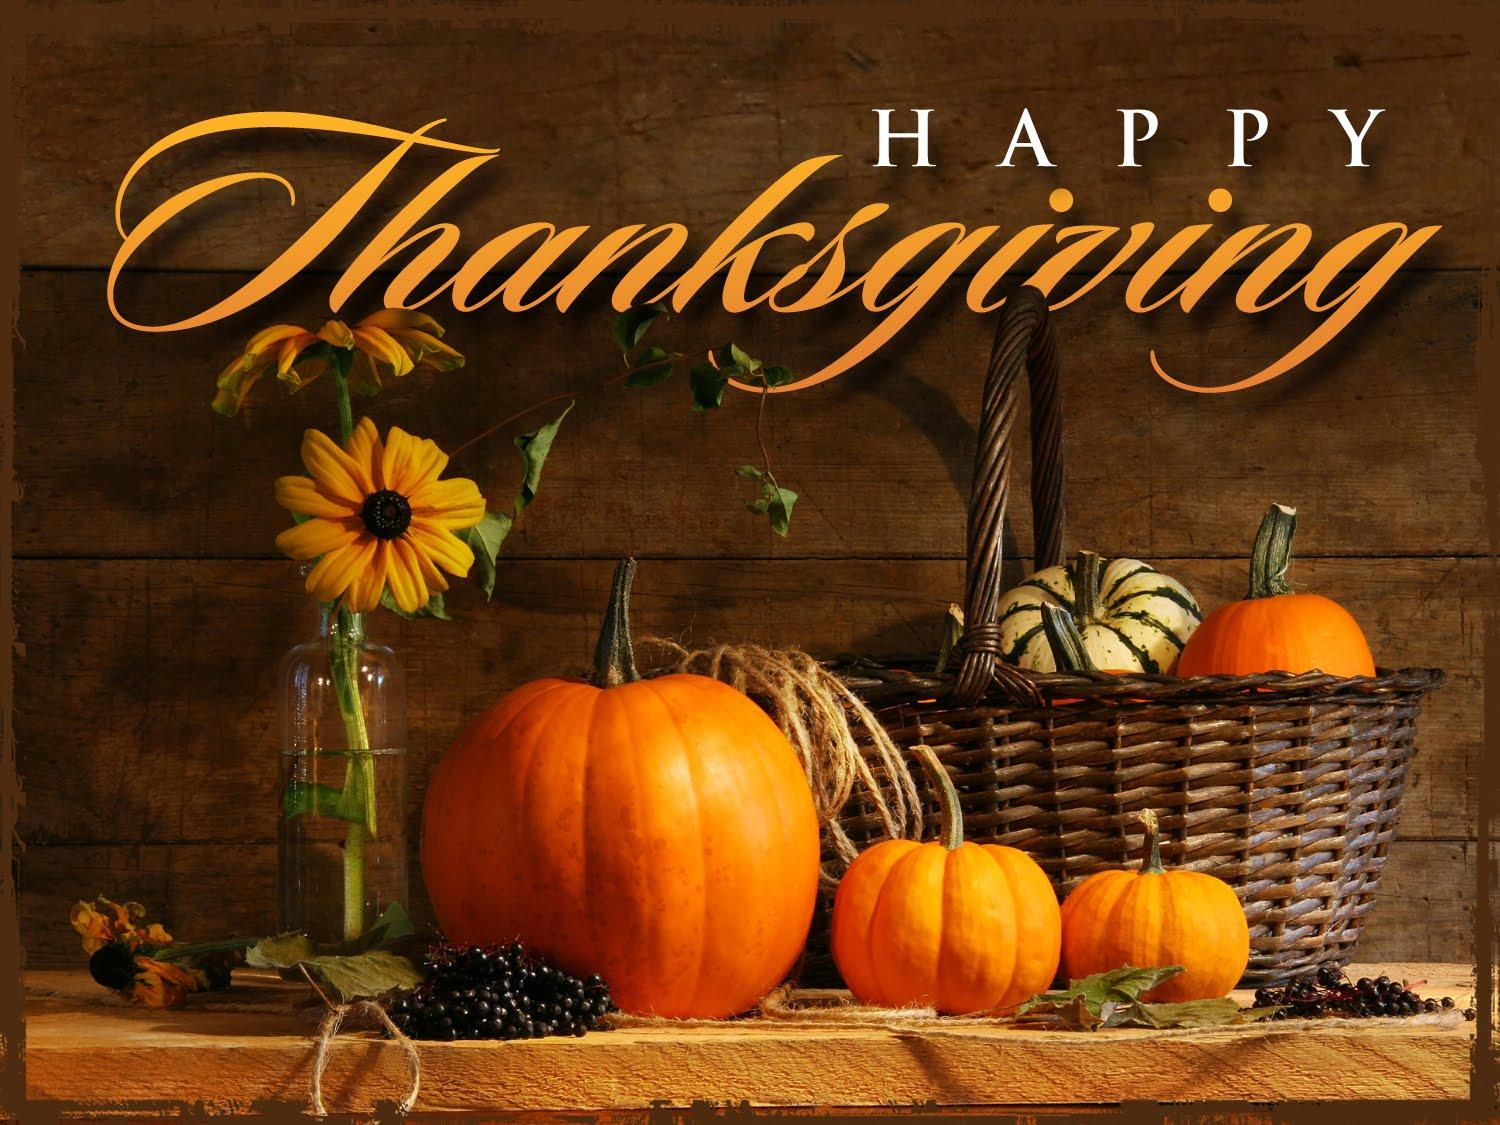 We Also Commemorate Next Weeks Holiday With Classic Satire About Our Nations First Thanksgiving As Well An Original Contemporary Song By